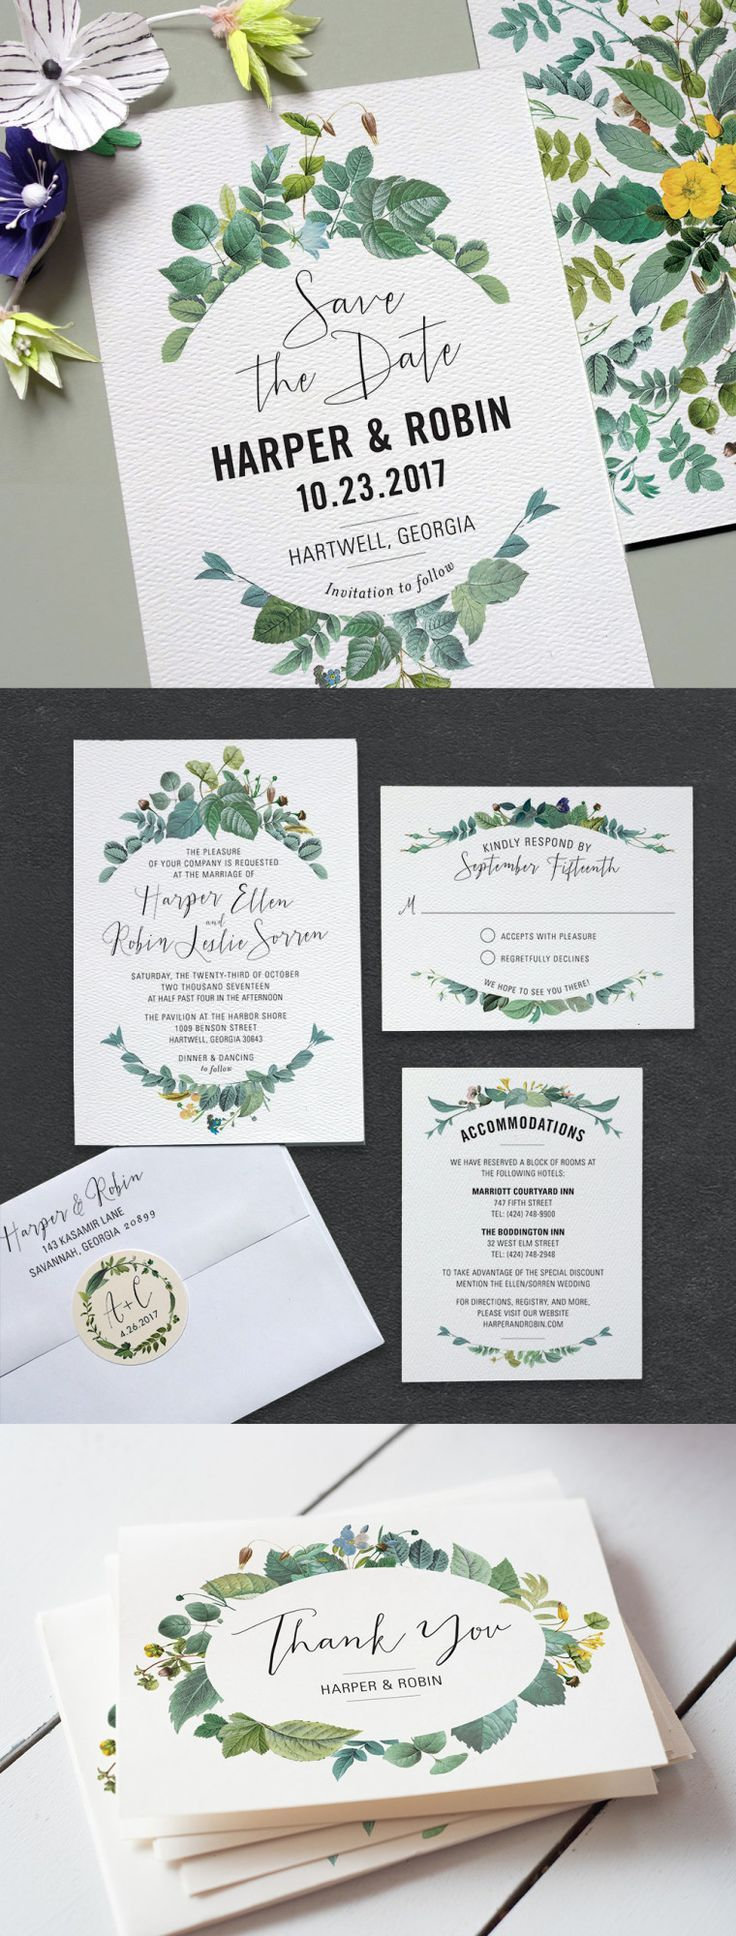 120 Best Wedding Invitations Save The Dates Images On Pinterest